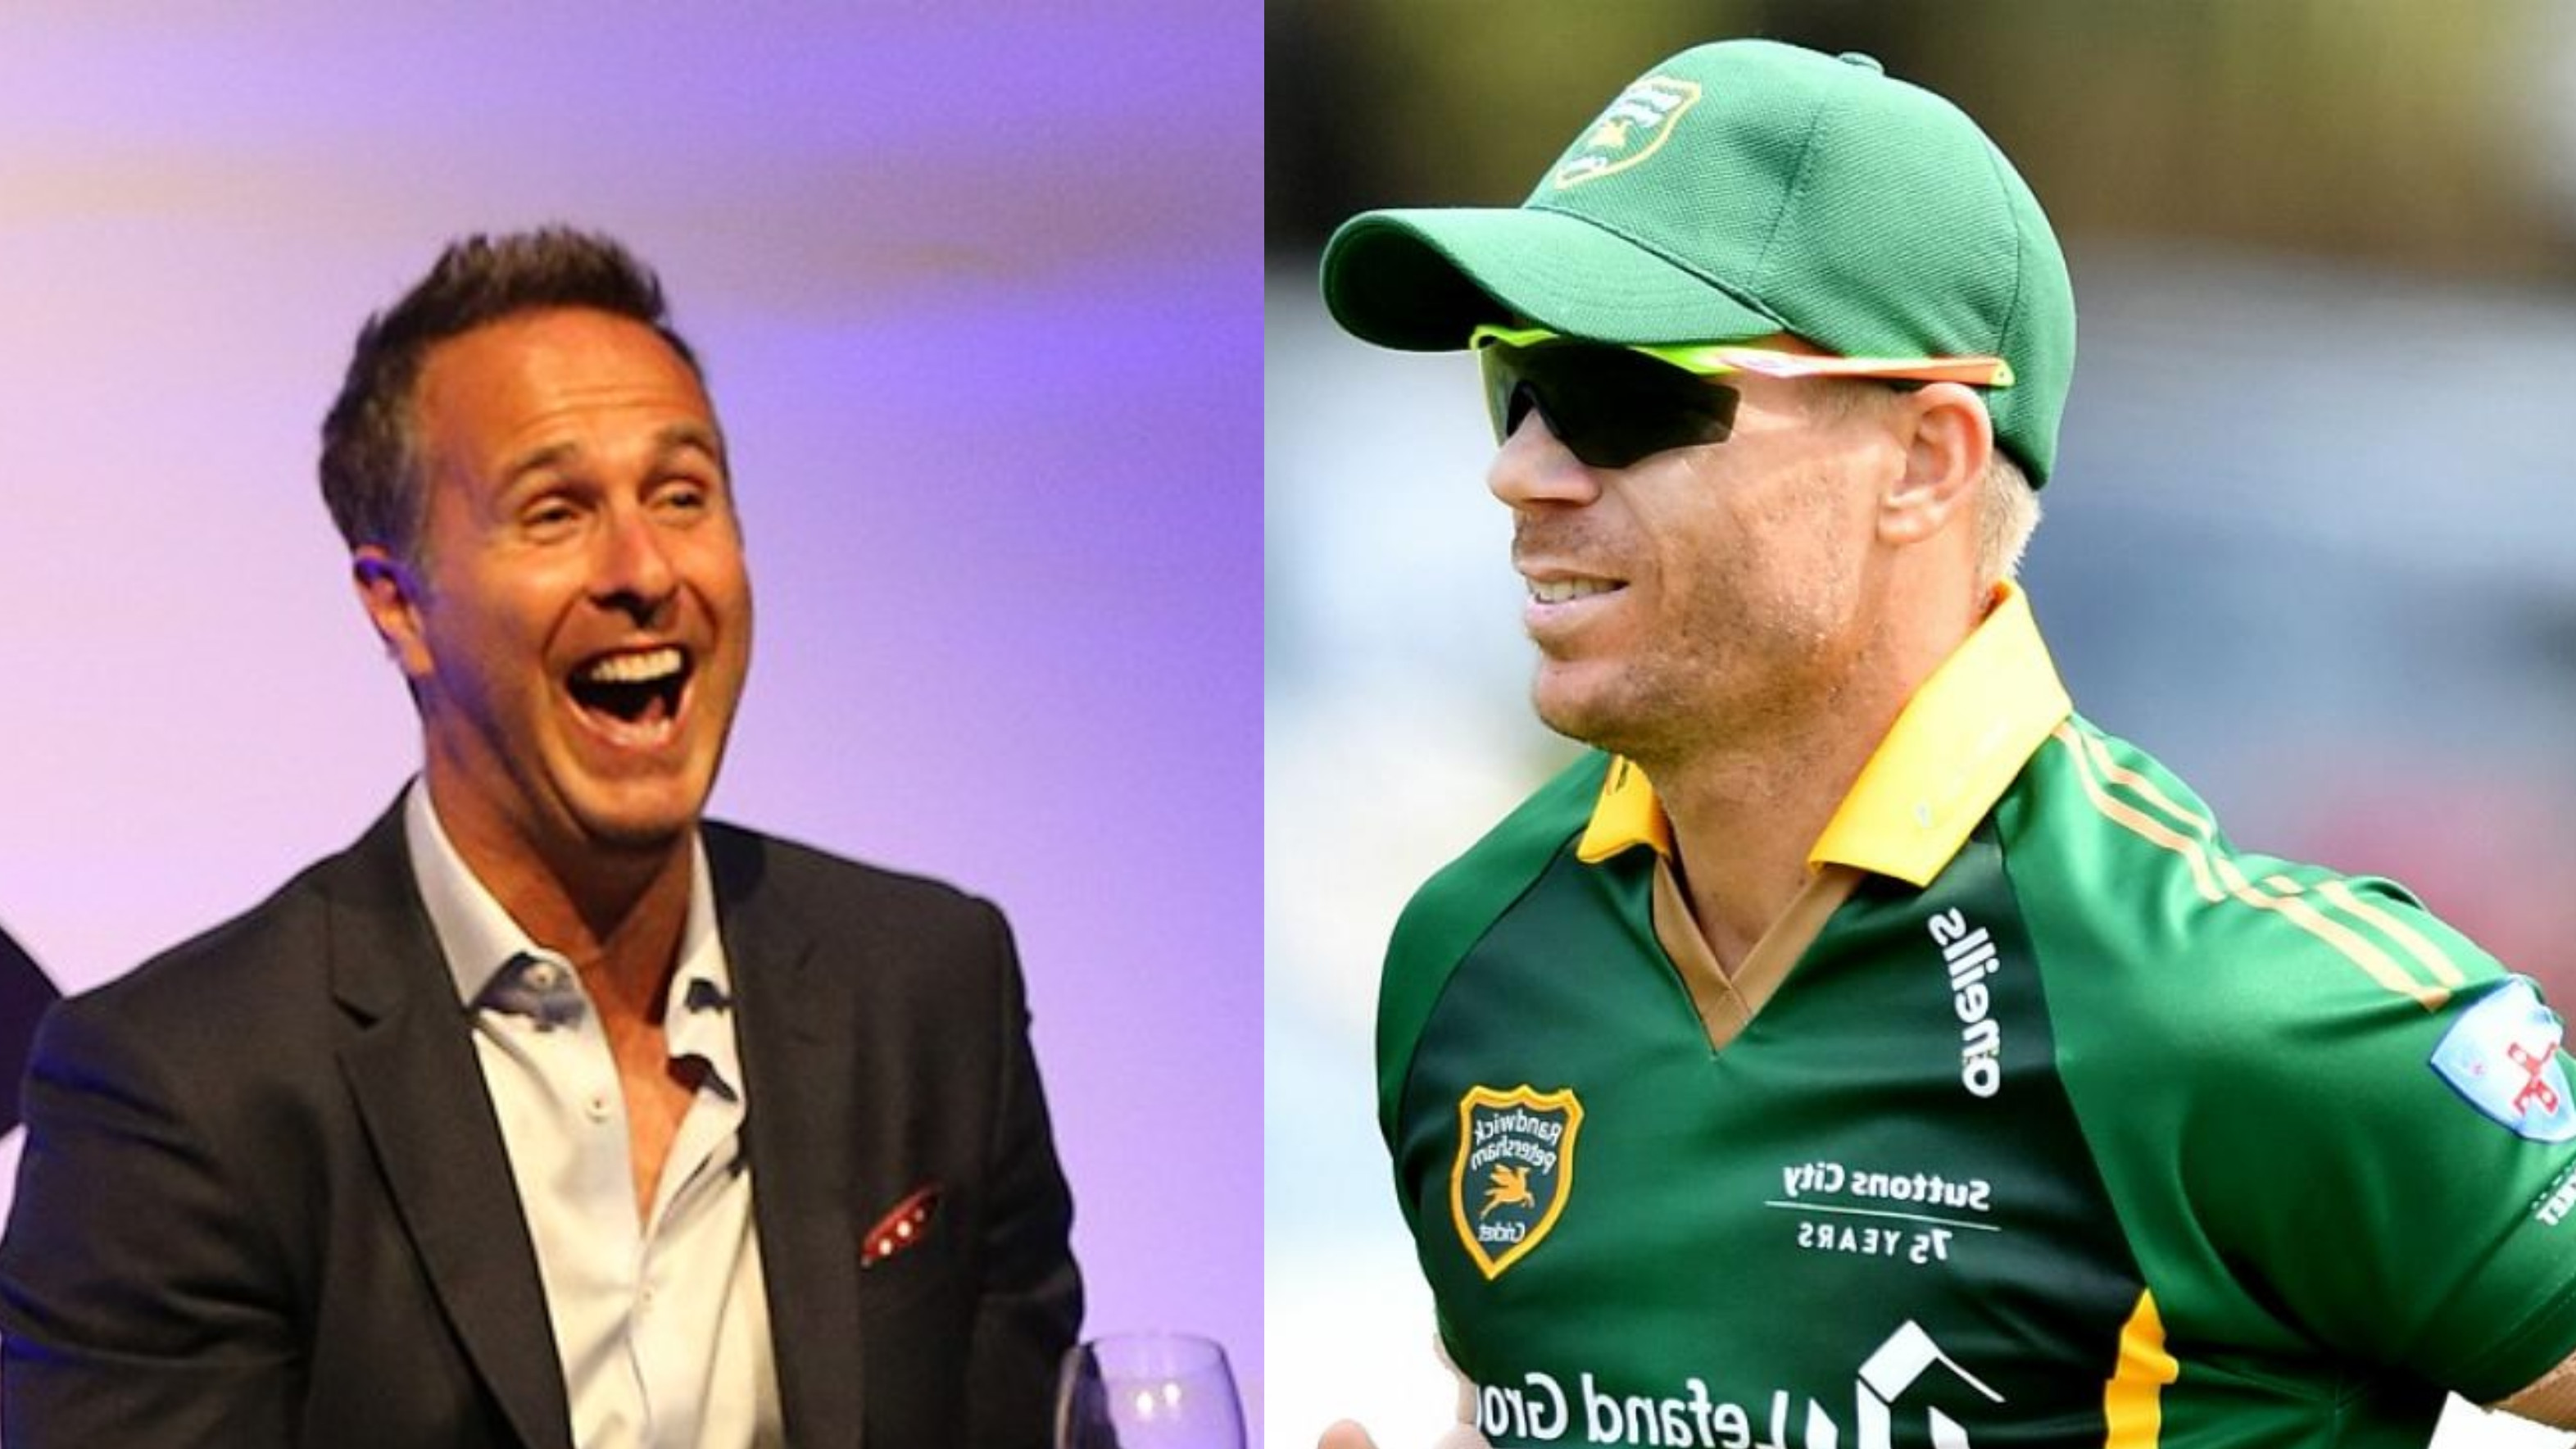 Michael Vaughan once again targets Australian cricket after David Warner's